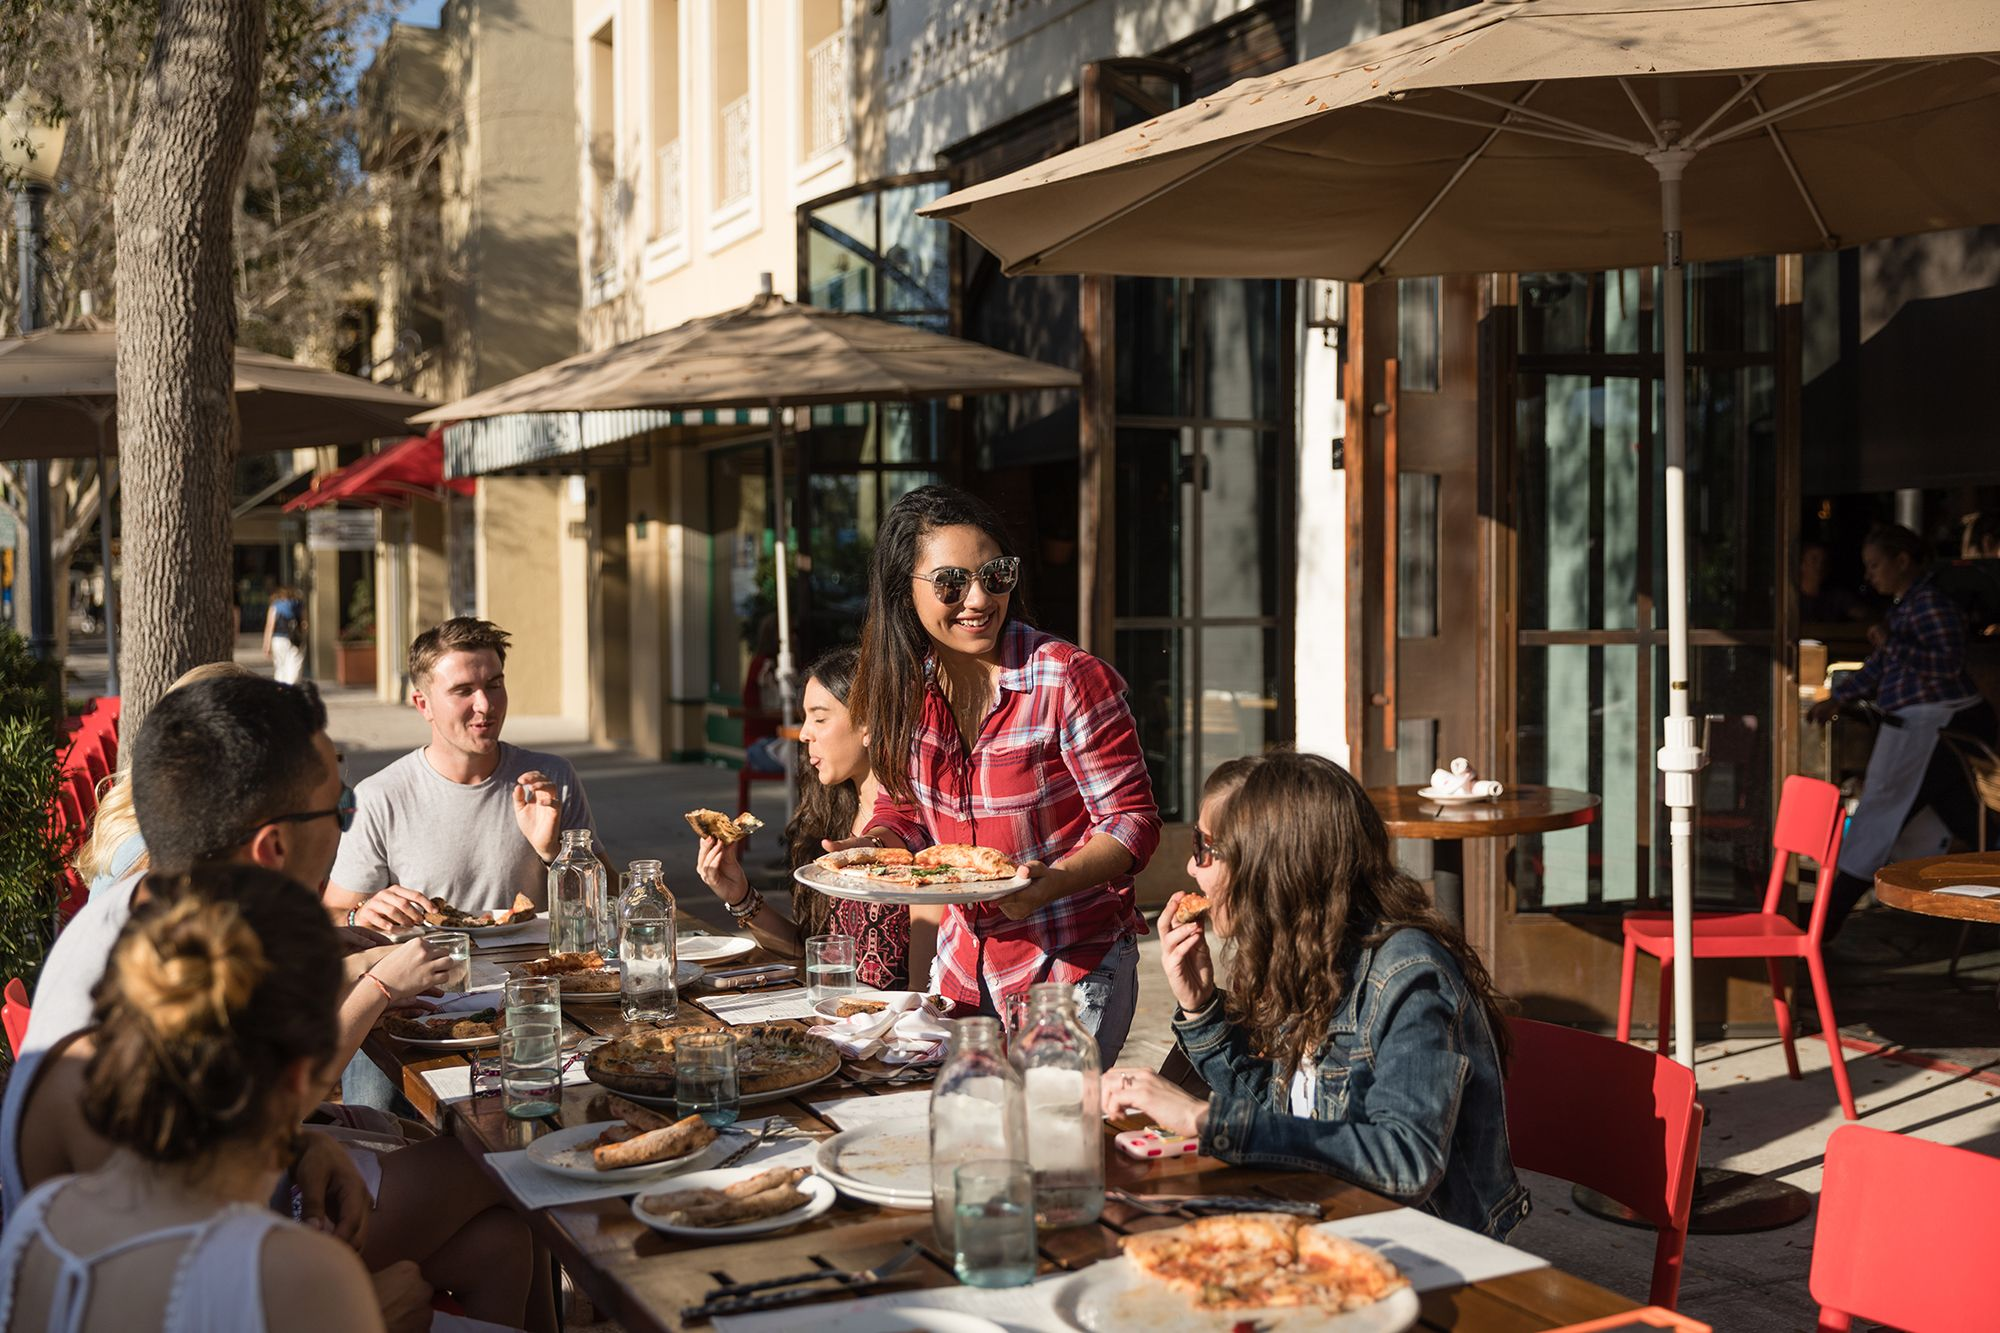 Students share pizza at Prato on Park Avenue.